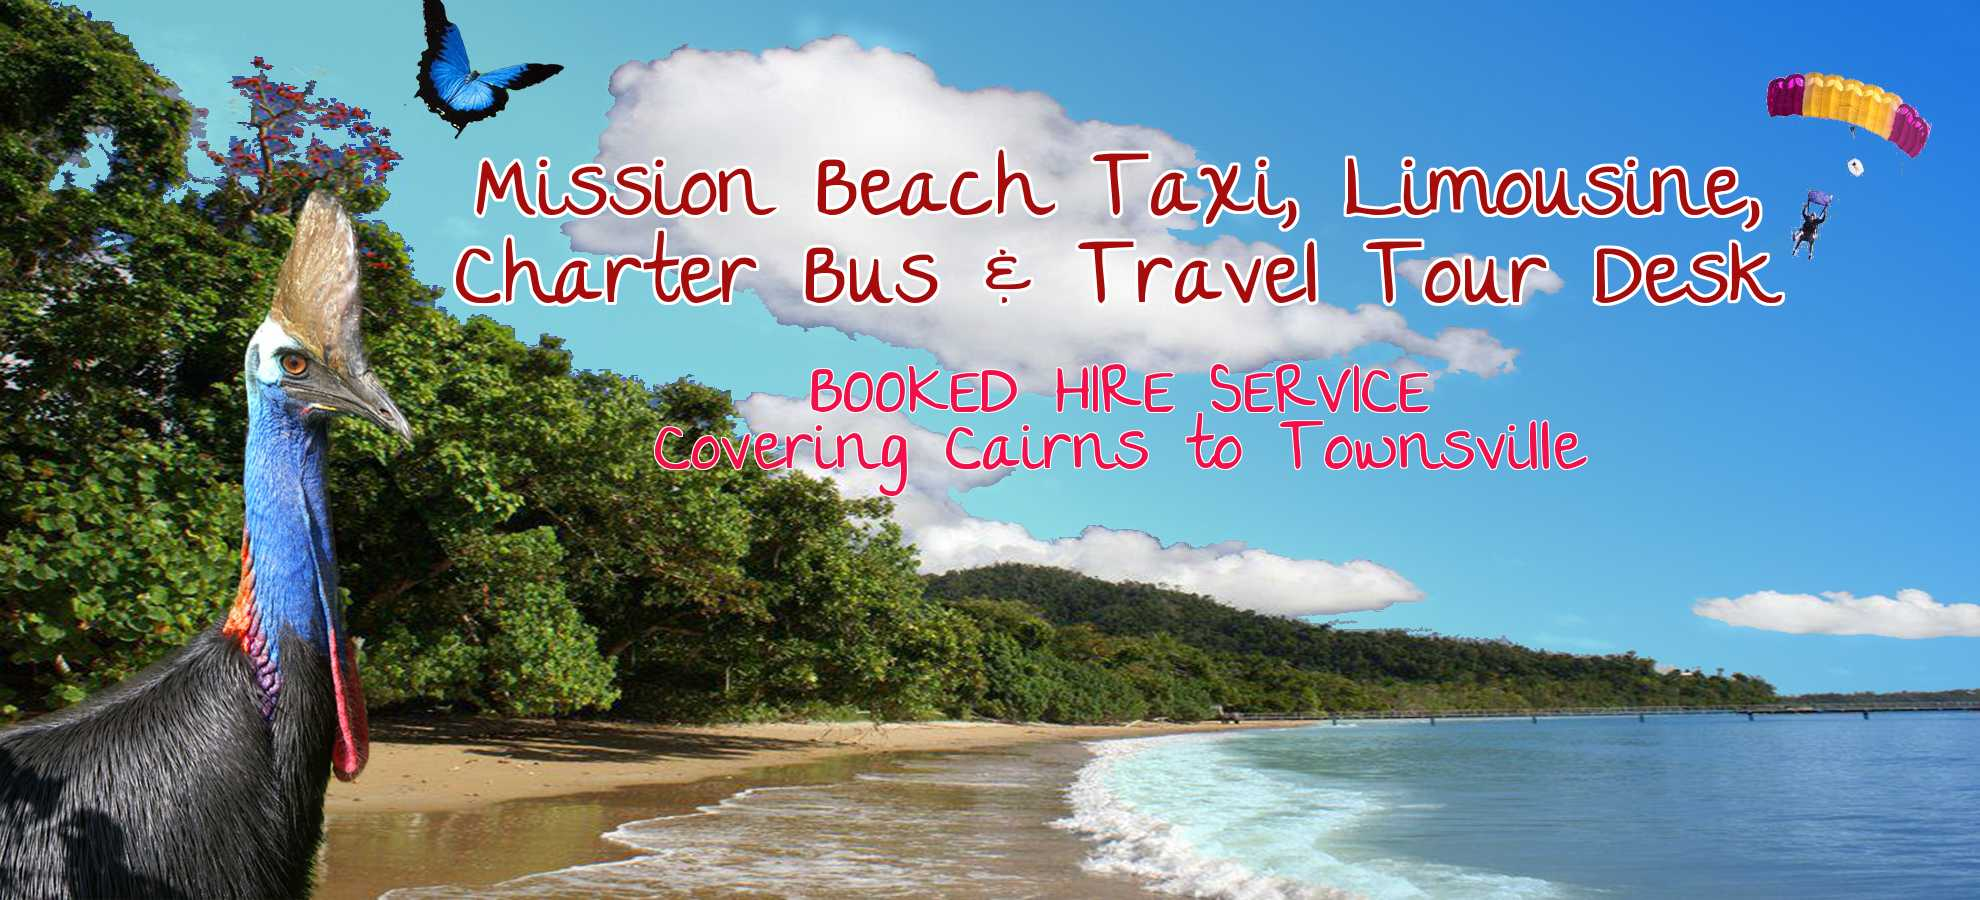 Mission Beach Taxi, Limousine, Charter Buses